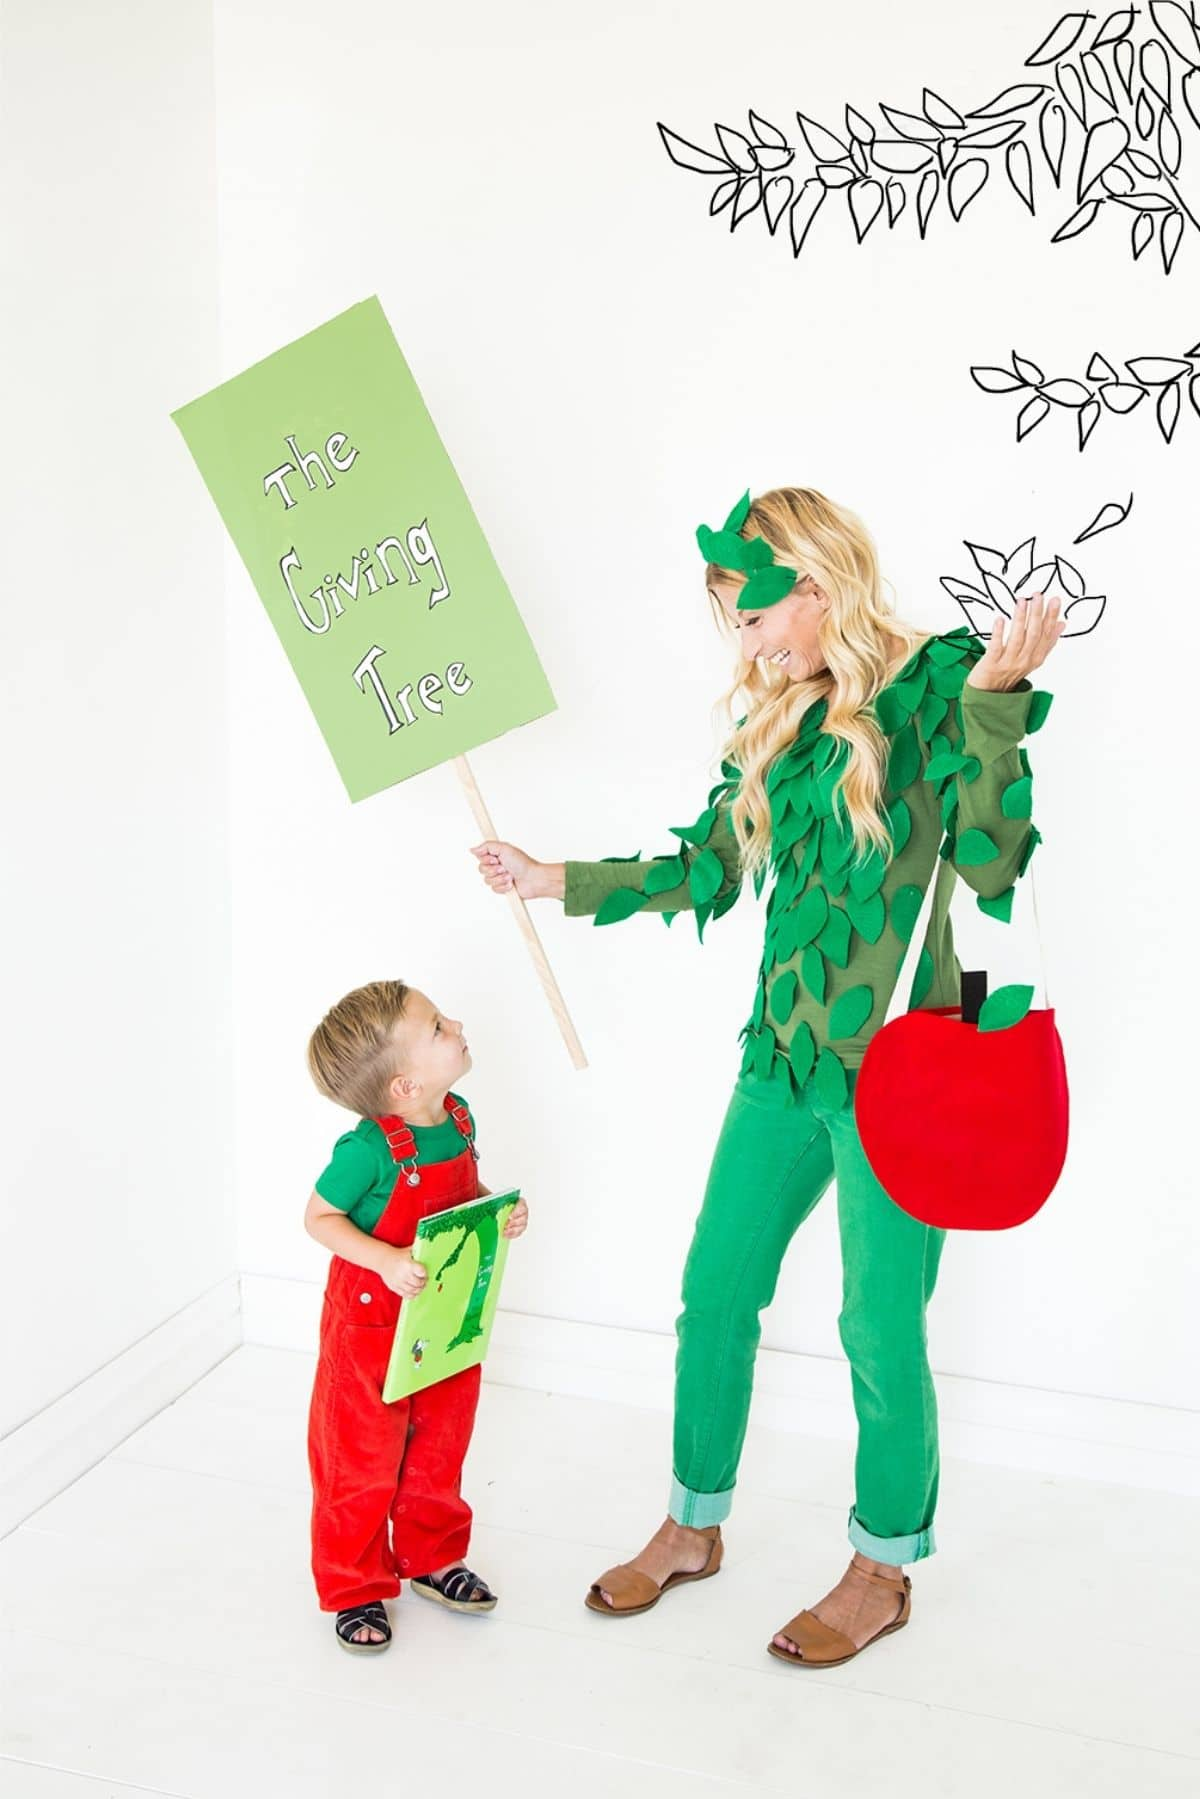 The Giving Tree costumes